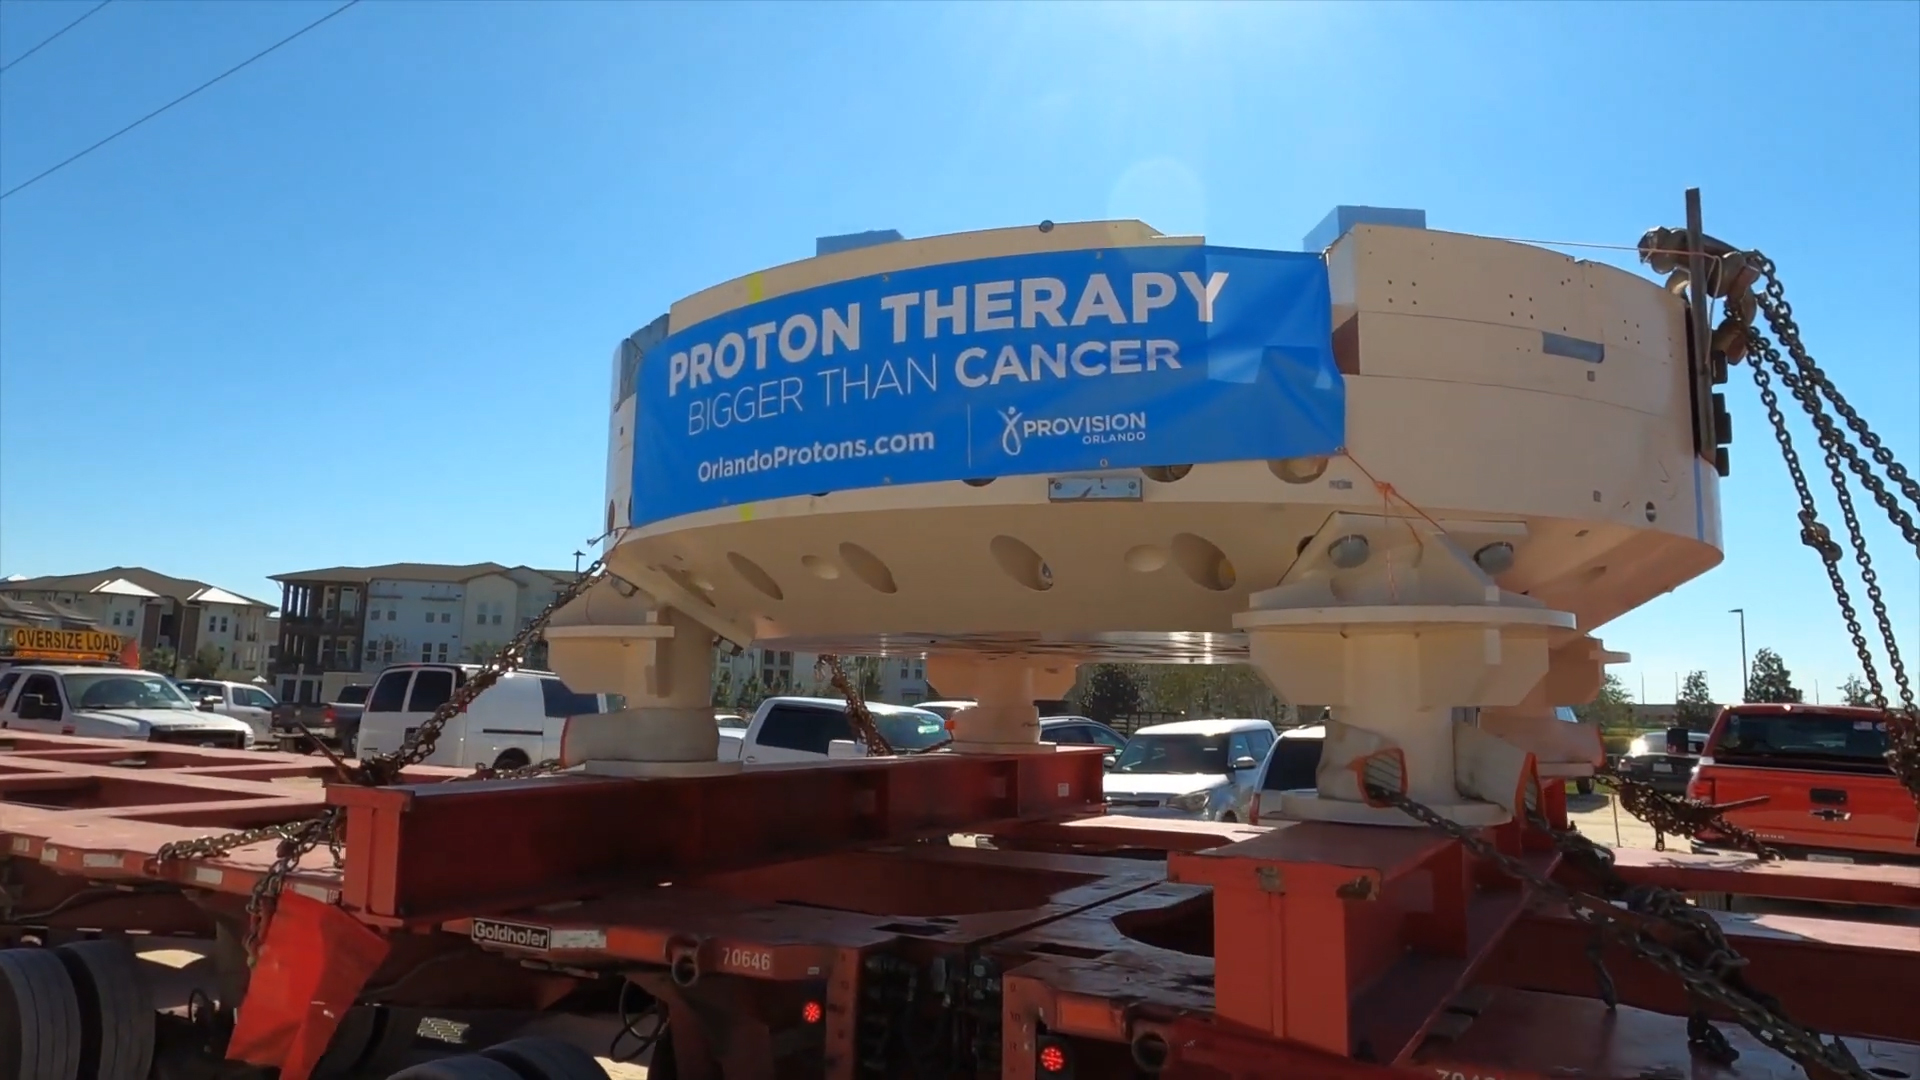 The cyclotron arrives at Provision CARES Proton Therapy Orlando